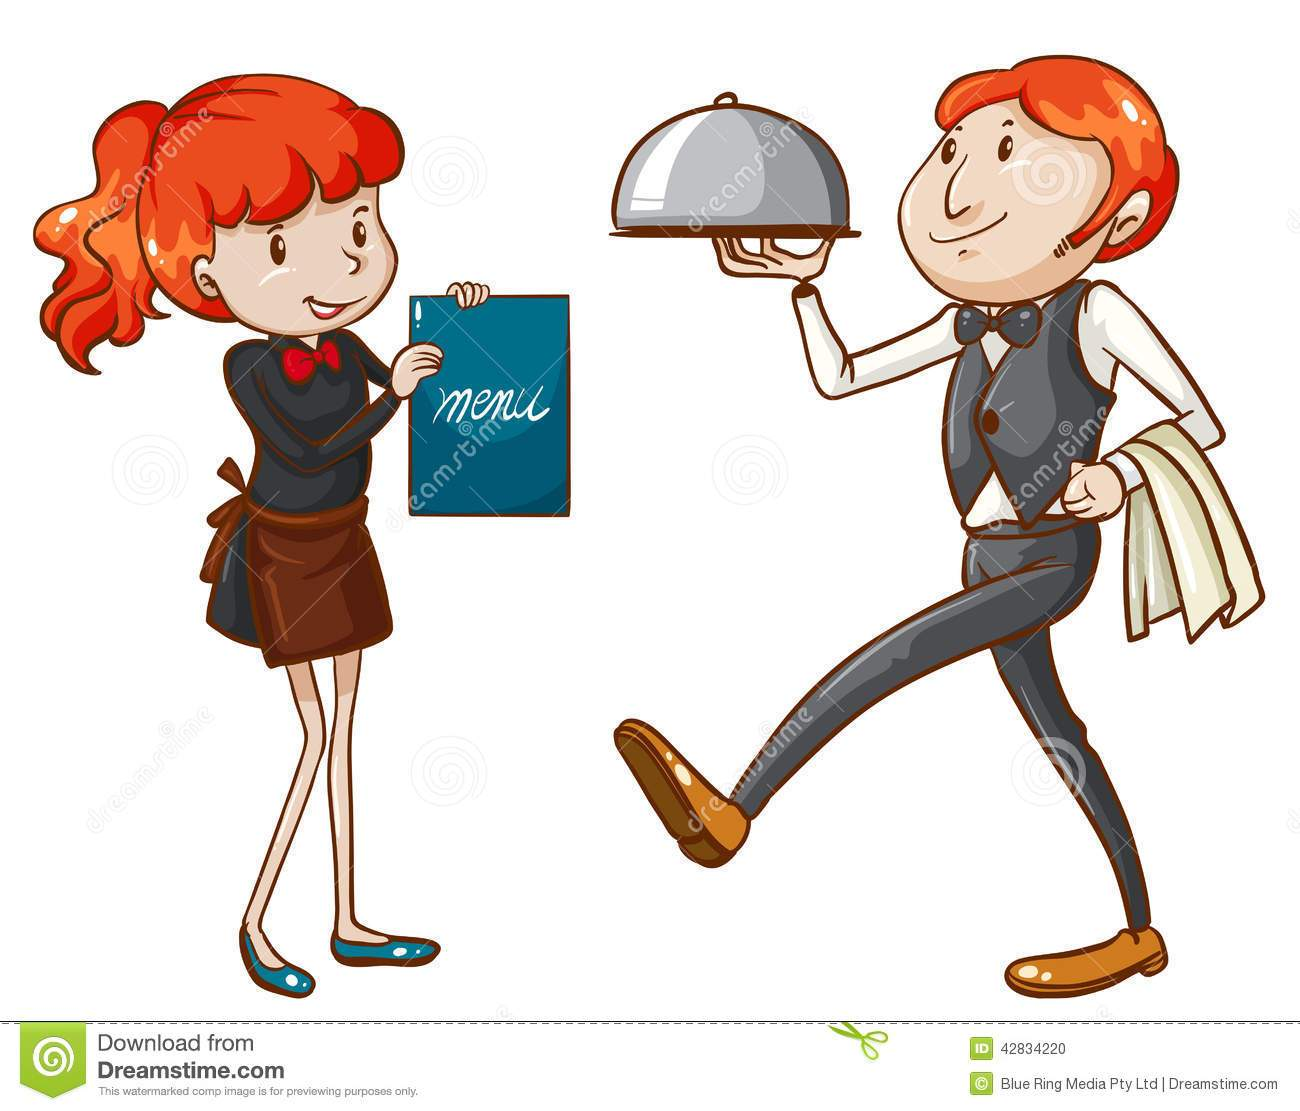 Waiter and waitress clipart 7 » Clipart Portal.